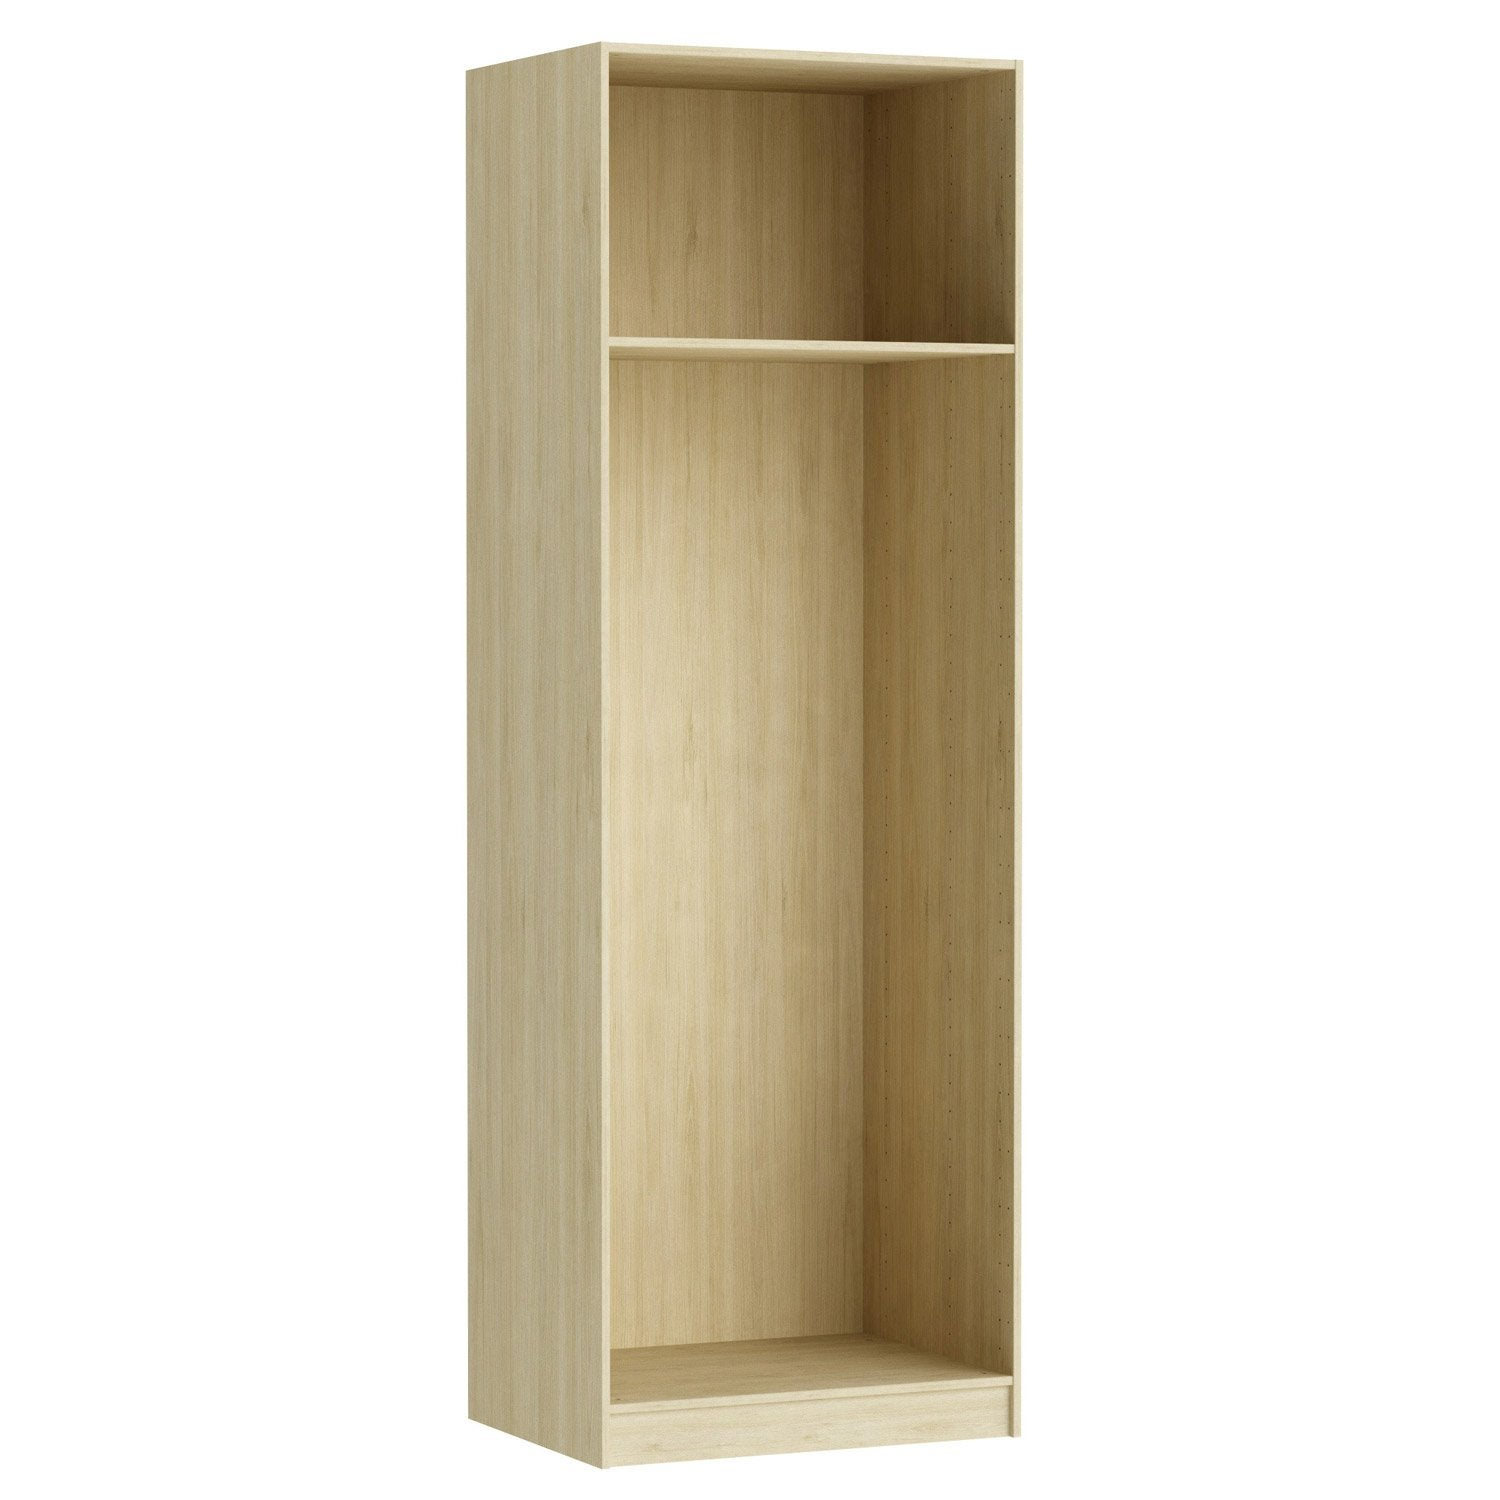 caisson spaceo home 240 x 80 x 60 cm effet ch ne naturel leroy merlin. Black Bedroom Furniture Sets. Home Design Ideas